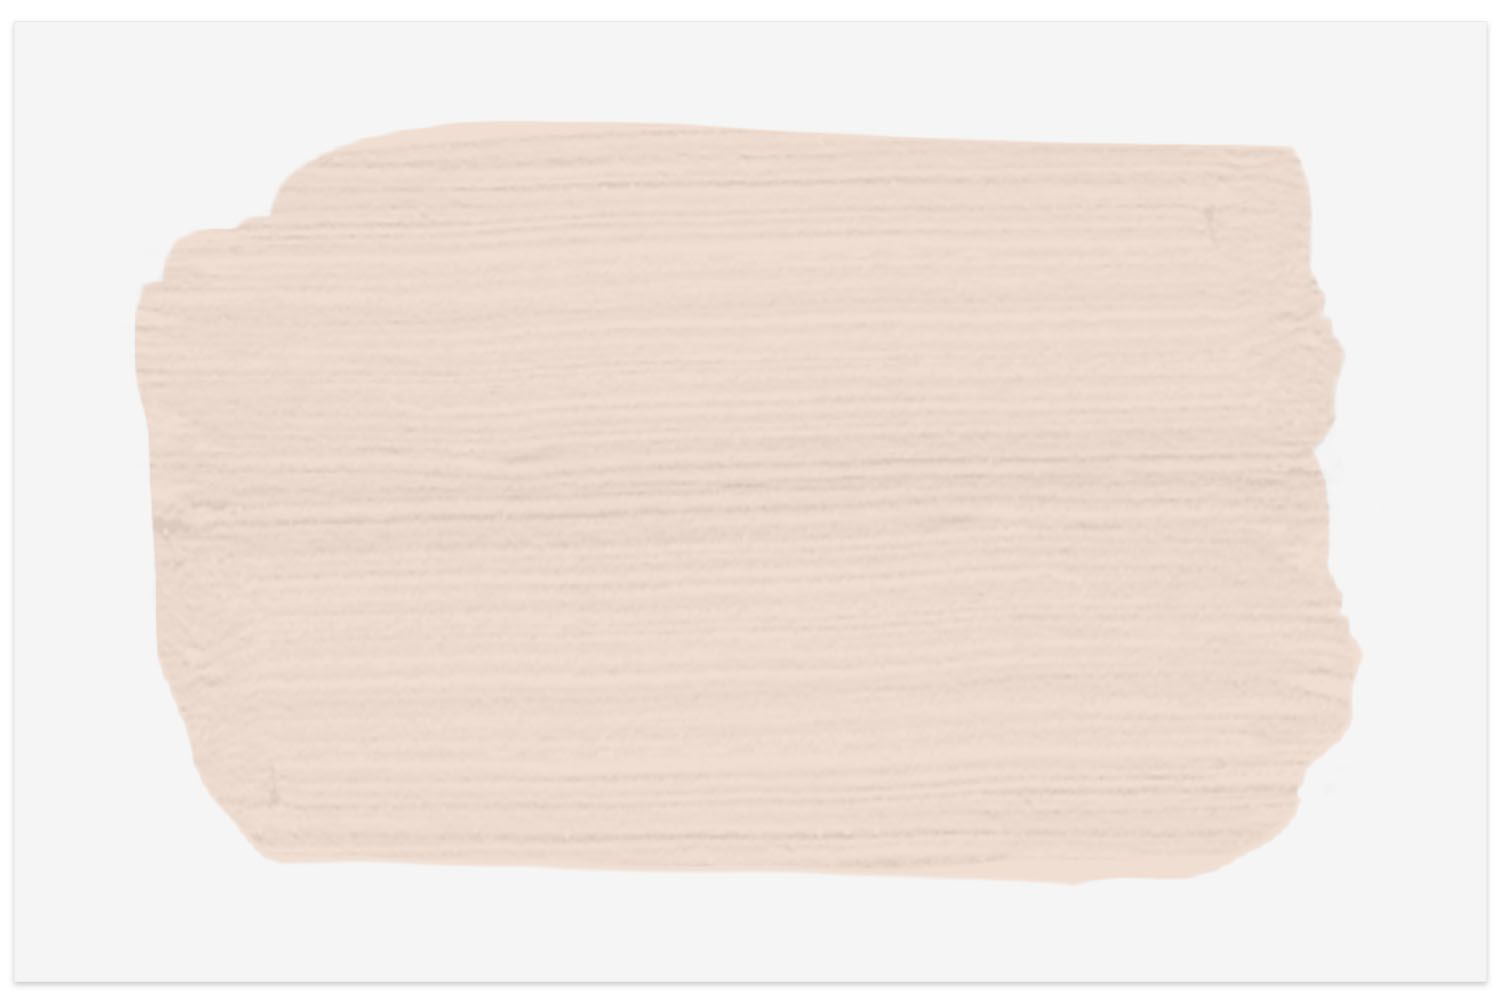 Glidden Spice Cookie paint swatch color